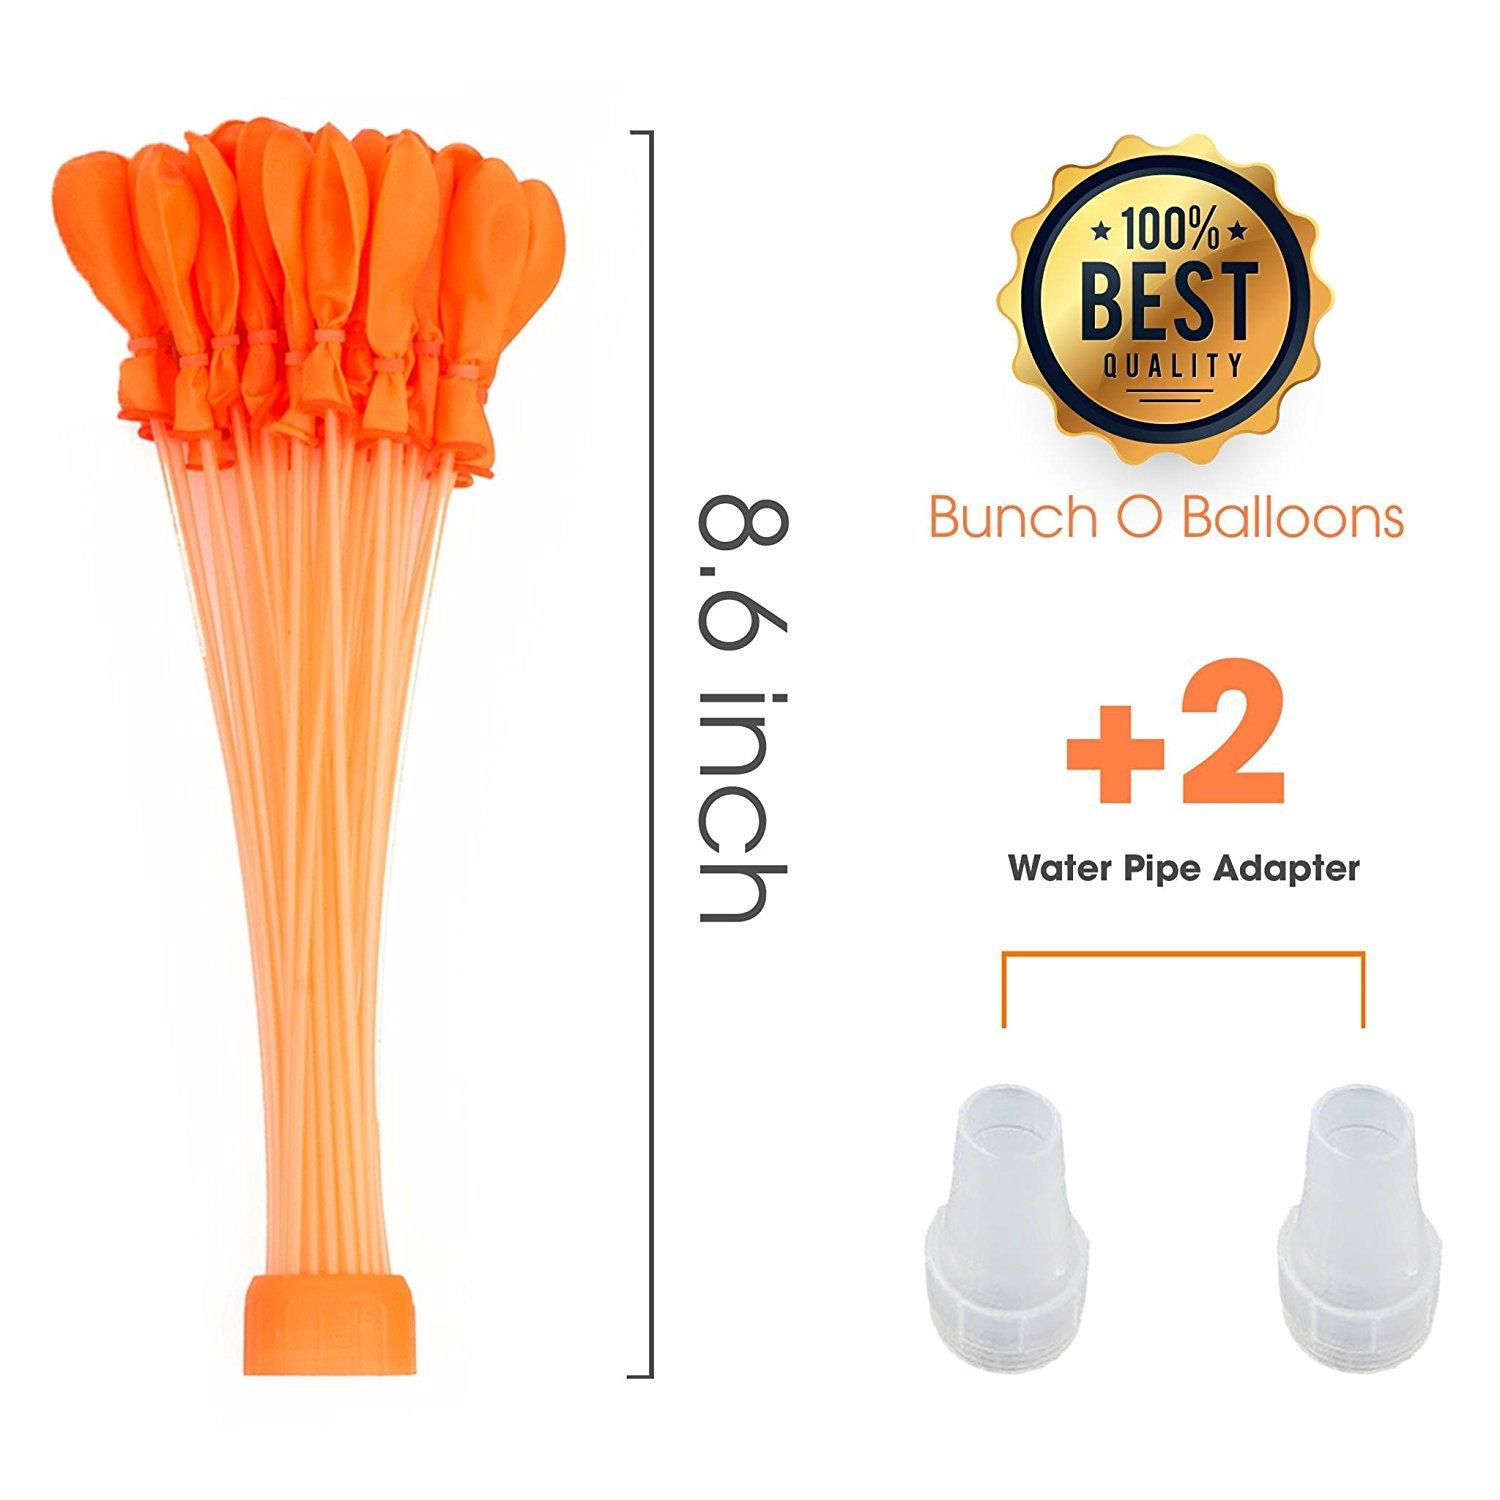 Hot Summer Fun Toy Set Claire L Markle MUSTFIT Water Bunch Balloons New Update 2018-8 Bunch Makes 296 Quick Fill Self Sealing Water Balloons 3 Minutes Black